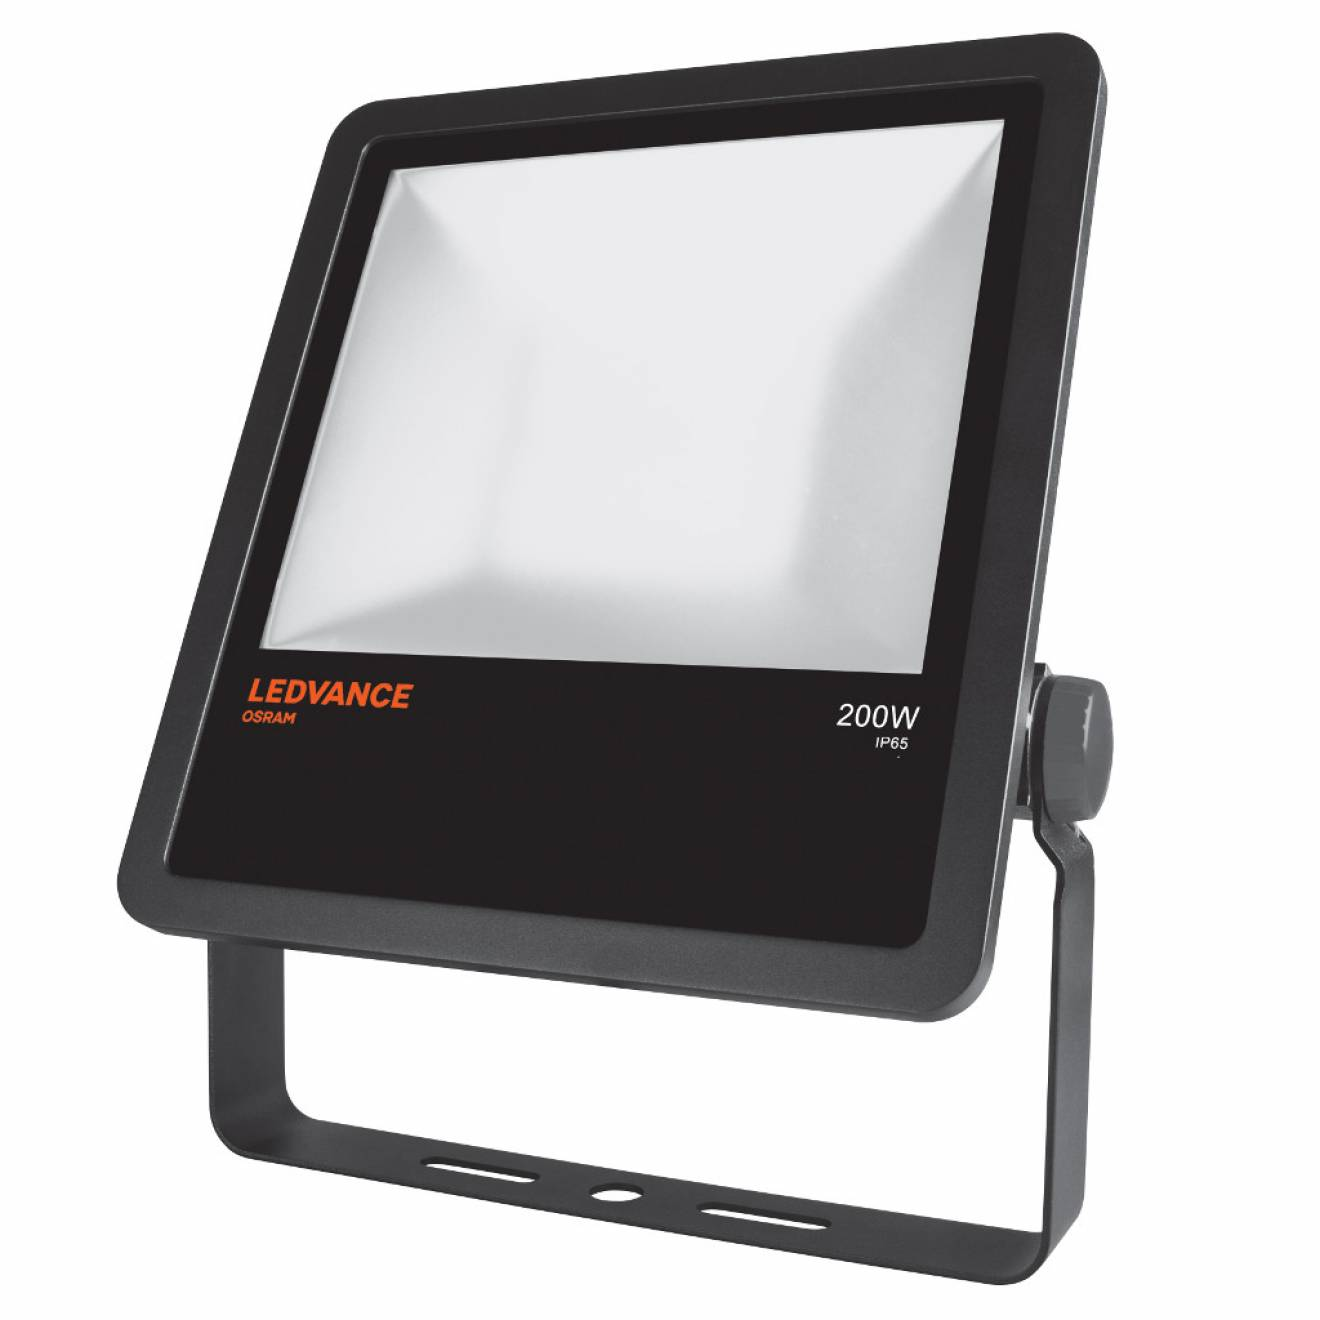 Projecteur Exterieur Led 100w Ledvance Led Floodlight 200w 4000k Floodlight Black